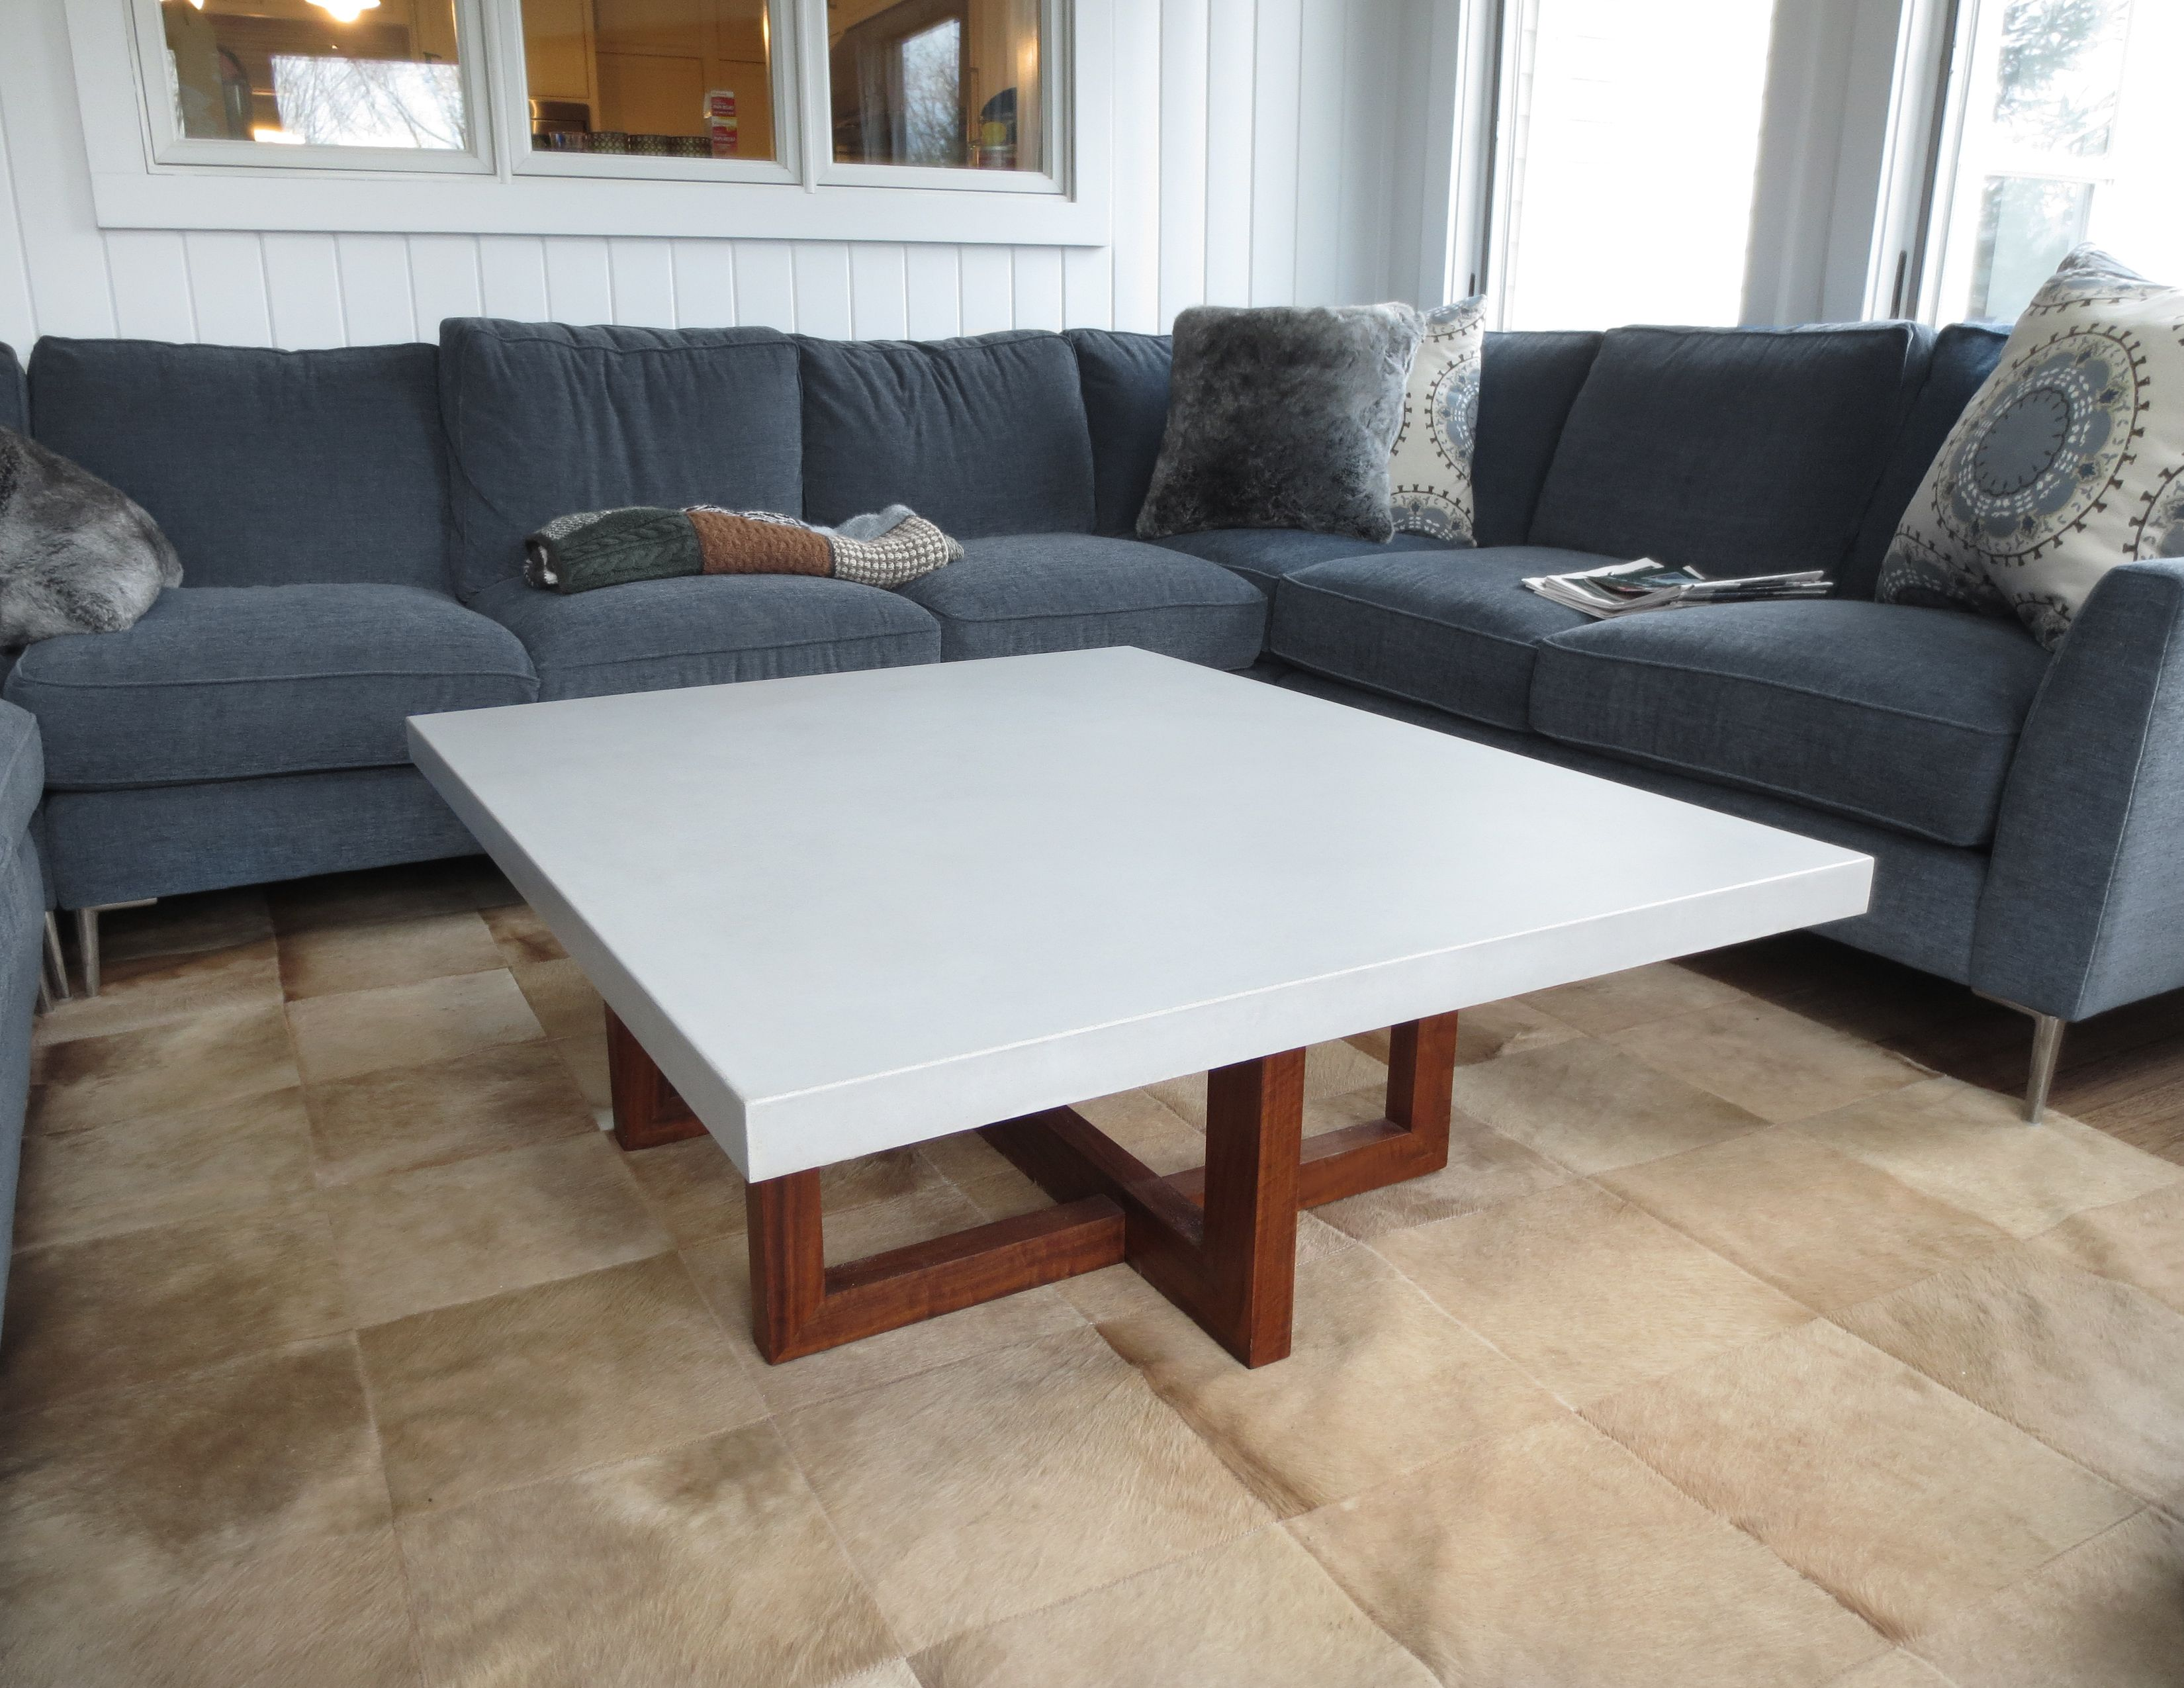 This is a concrete coffee table with a wood base the table top was just a cap that was made to sit on existing table base.